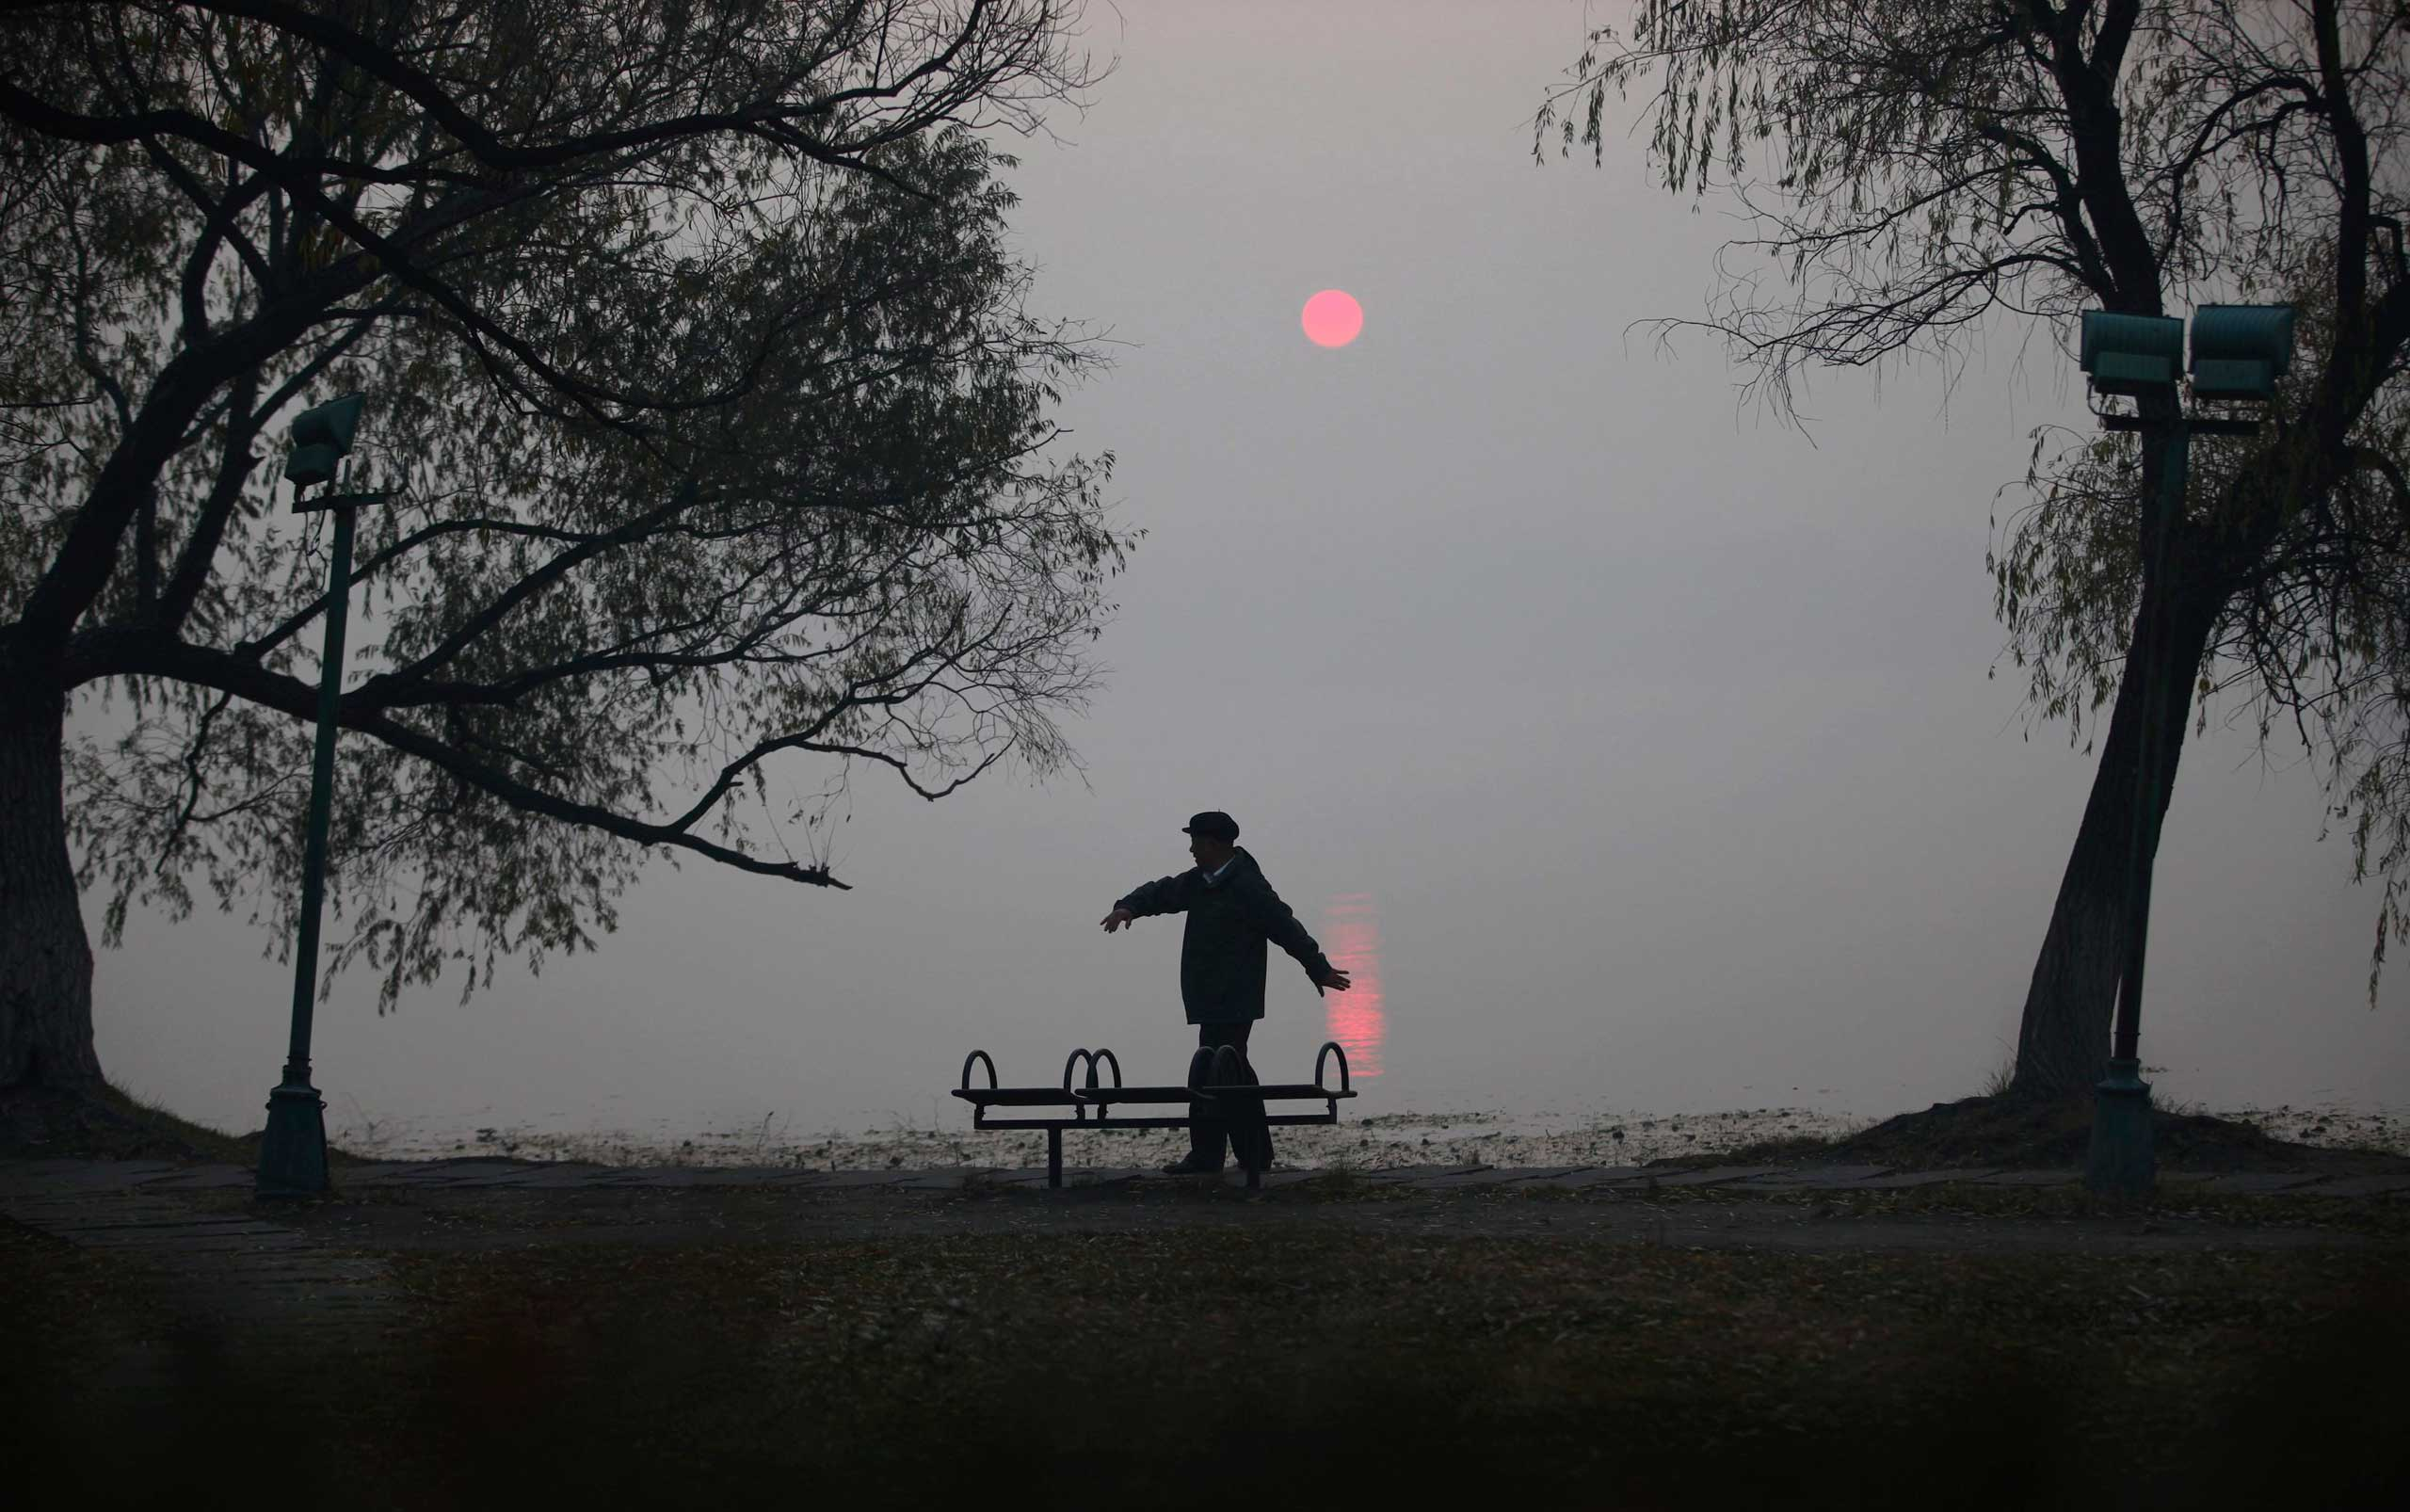 Oct. 22, 2014. A man does his morning exercise on a polluted day by the side of a lake at Nanhu Park in Changchun, Jilin province.